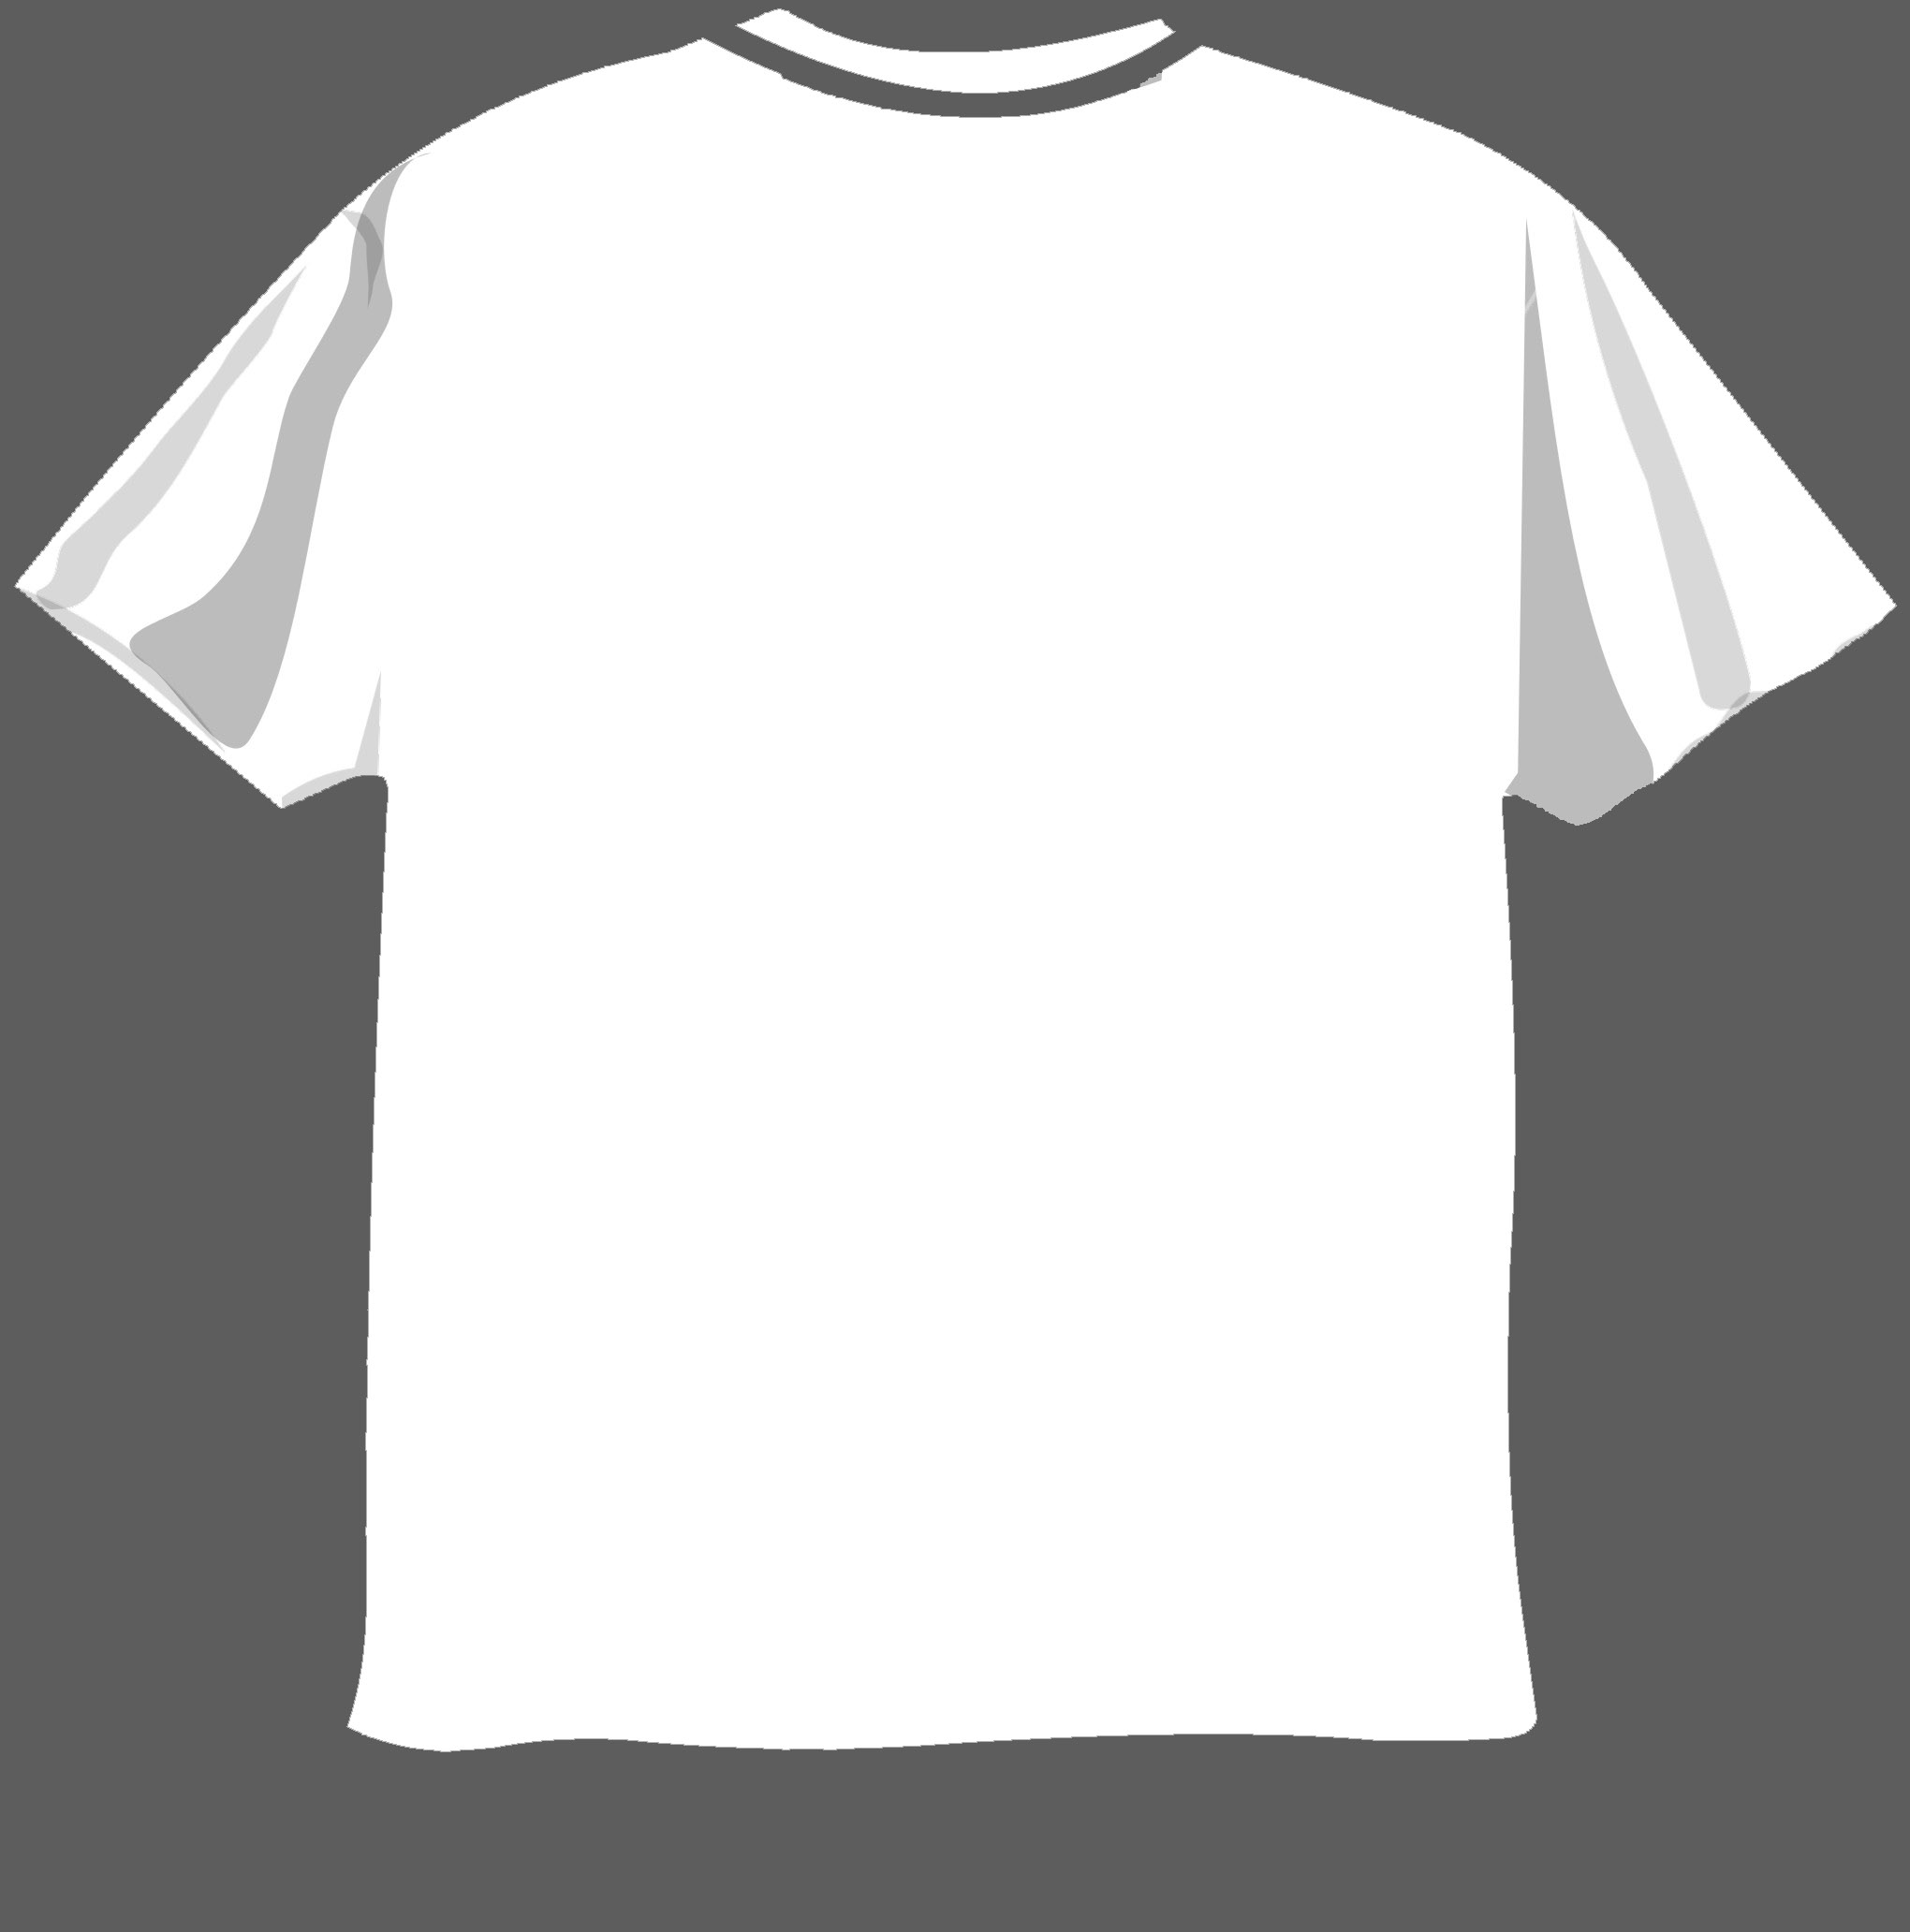 Photoshop Template T Shirt Wavy1